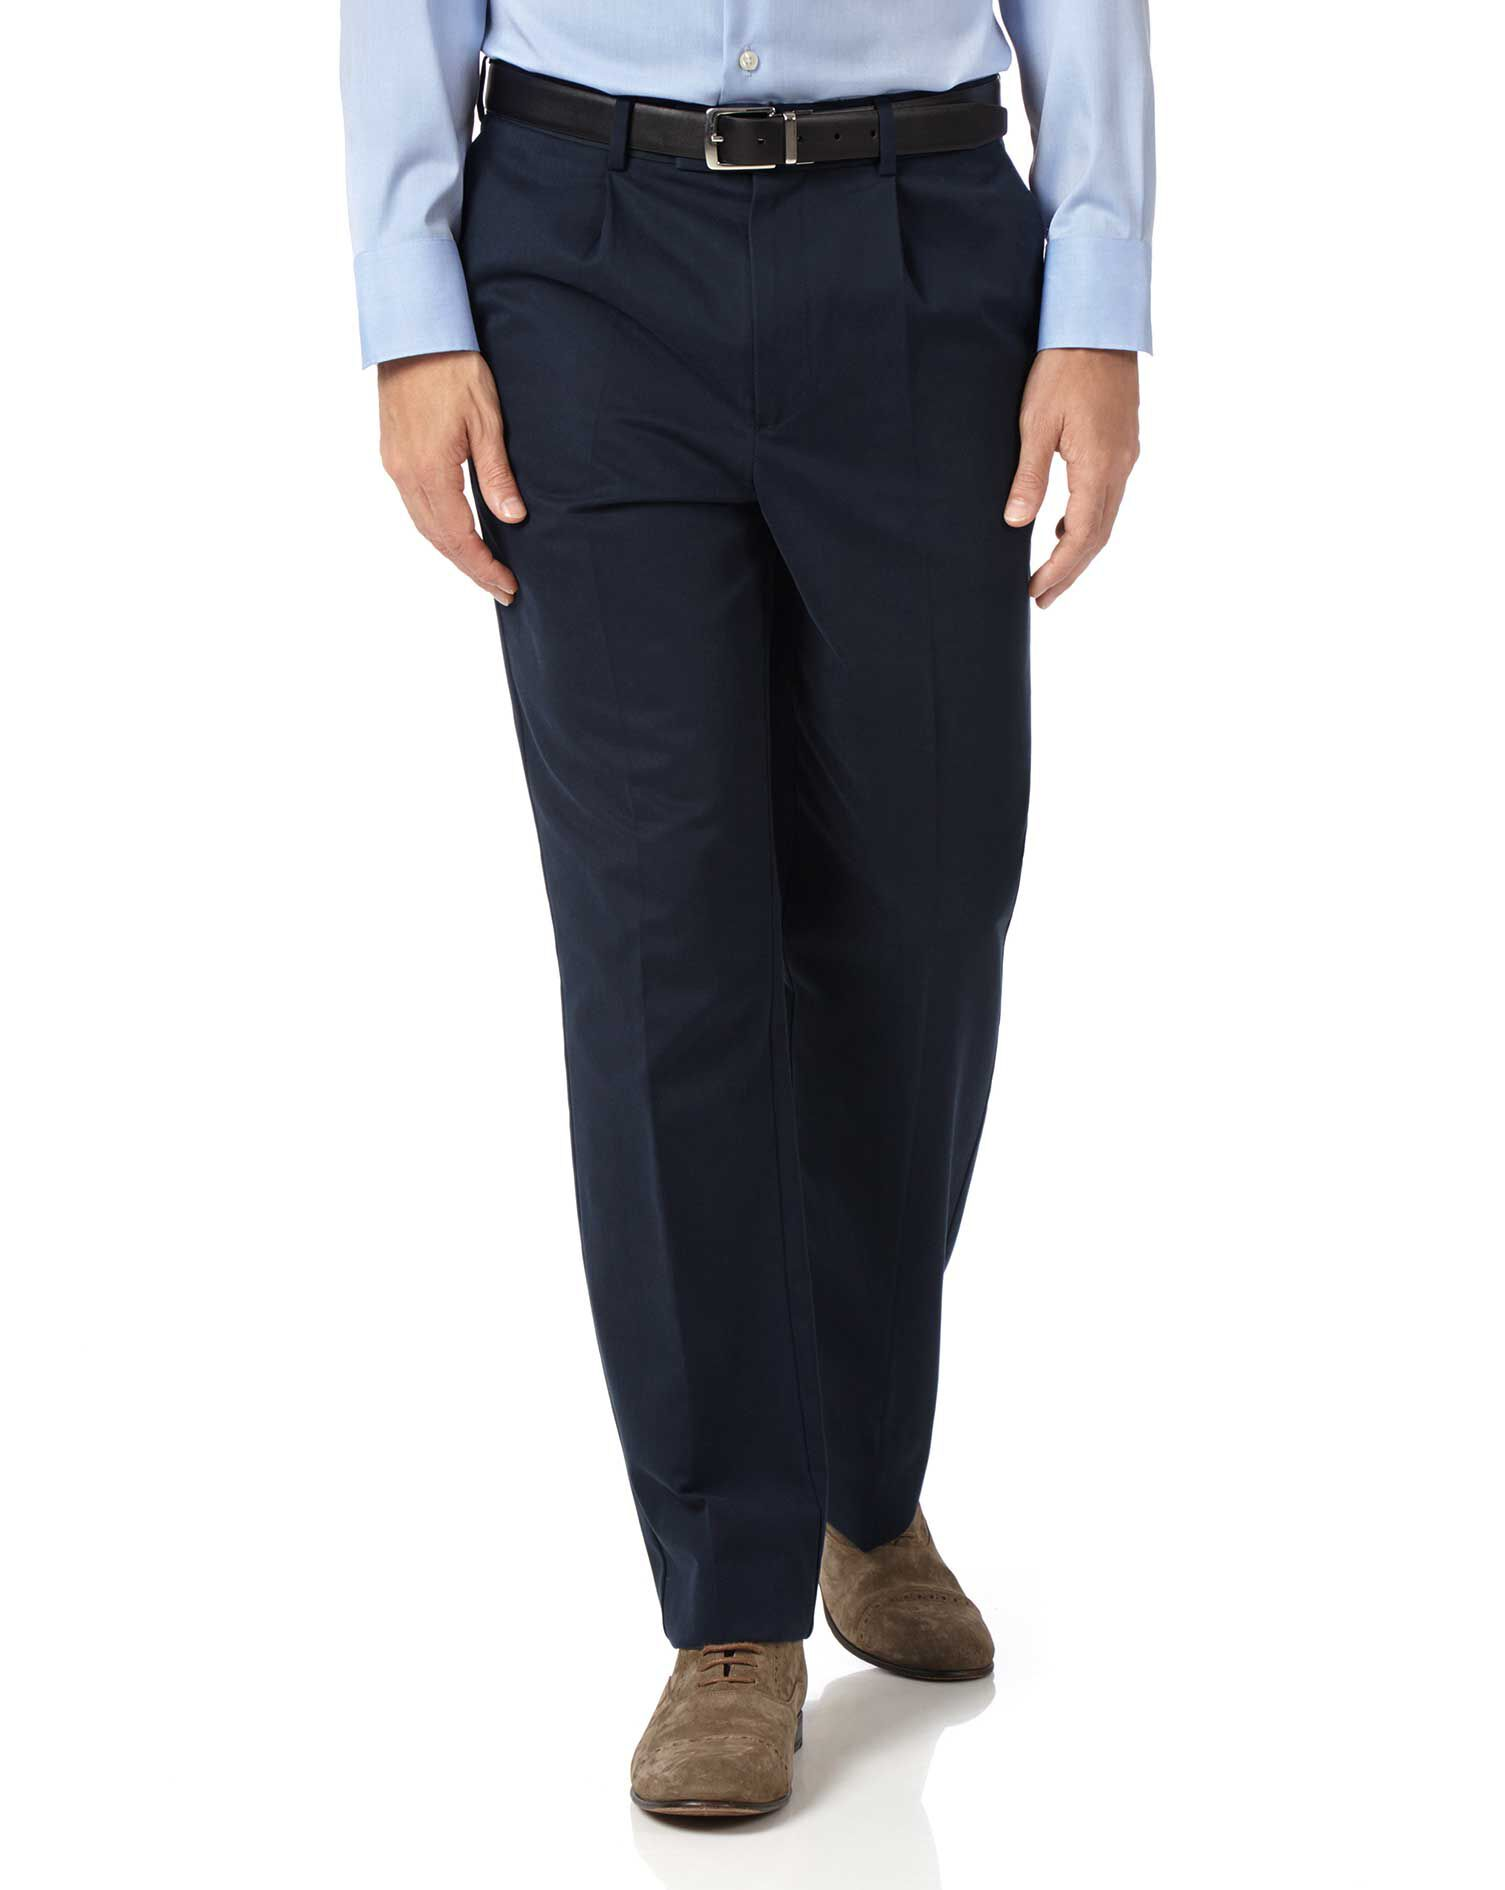 Navy Classic Fit Single Pleat Non-Iron Cotton Chino Trousers Size W42 L32 by Charles Tyrwhitt